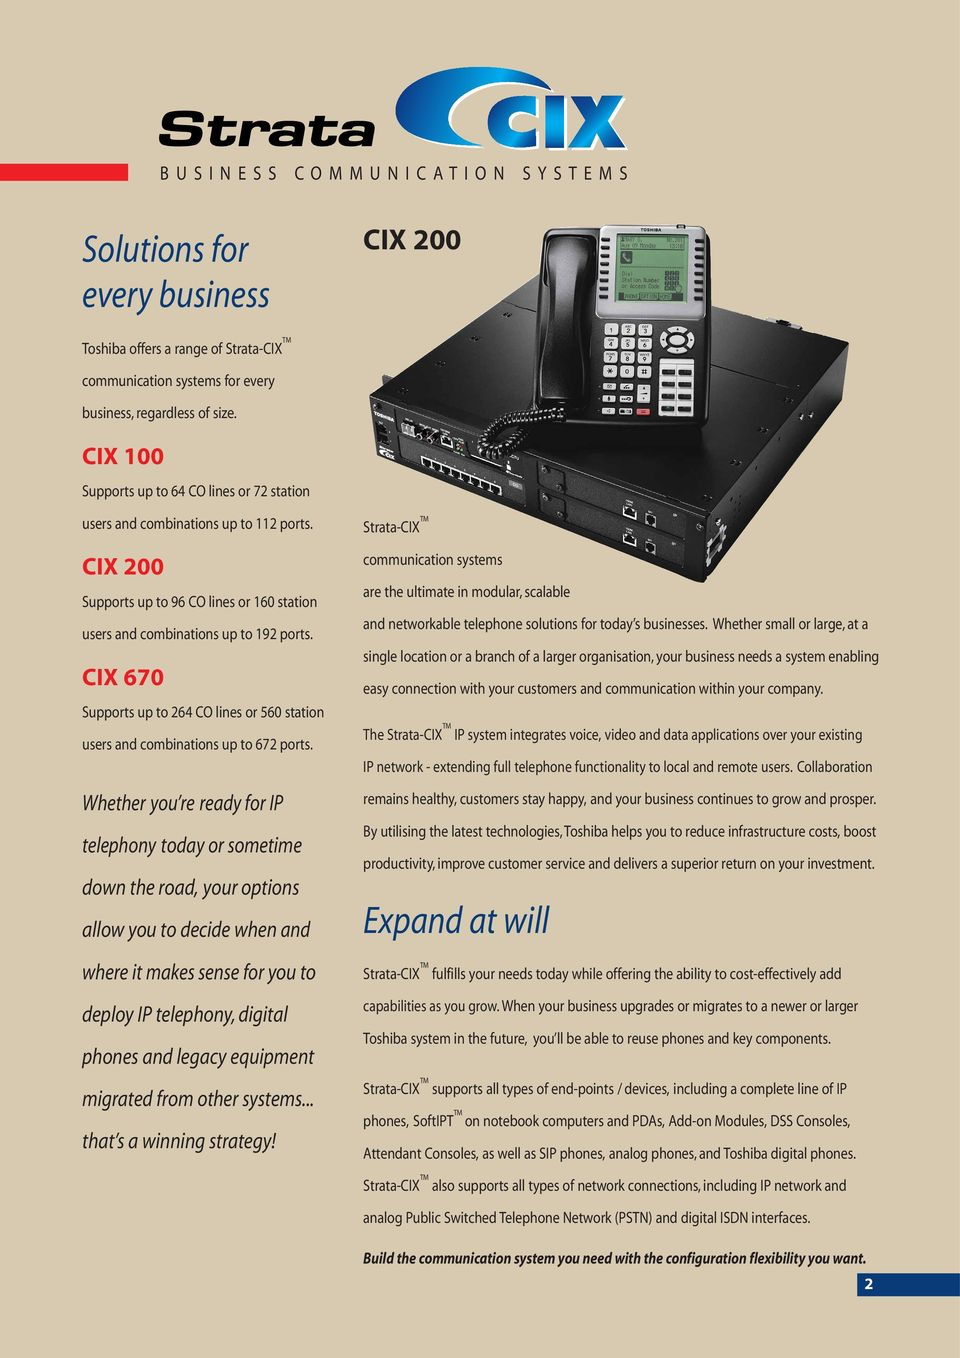 CIX 670 Supports up to 264 CO lines or 560 station users and combinations up to 672 ports.